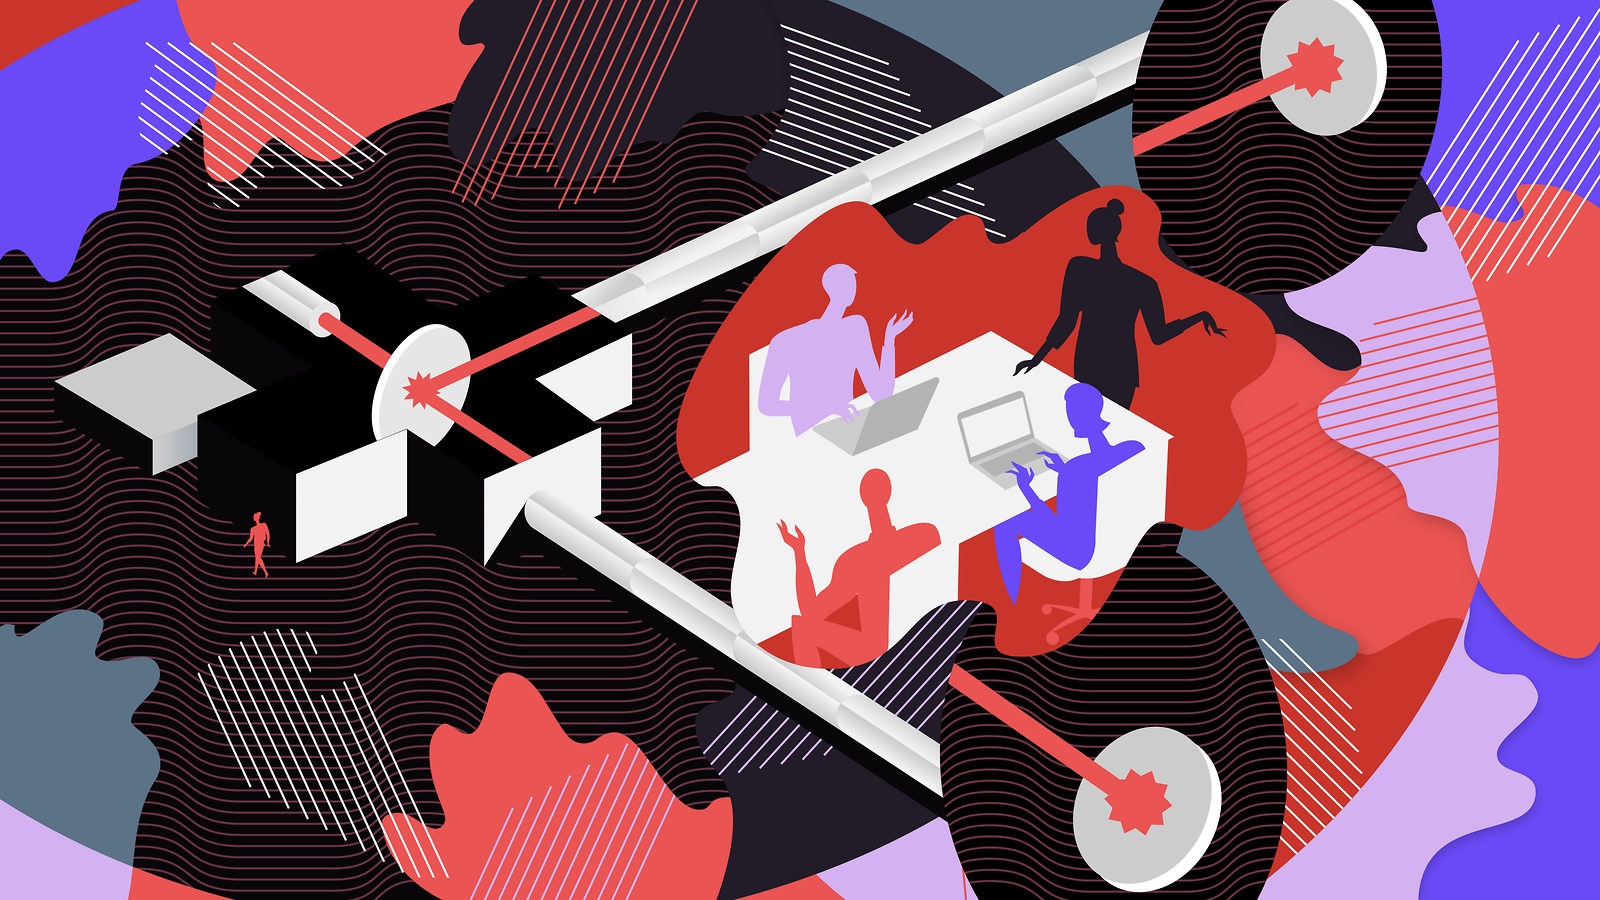 Illustration of scientists discussing the LIGO experiment in center of field of red, blue, purple, and black shapes and lines